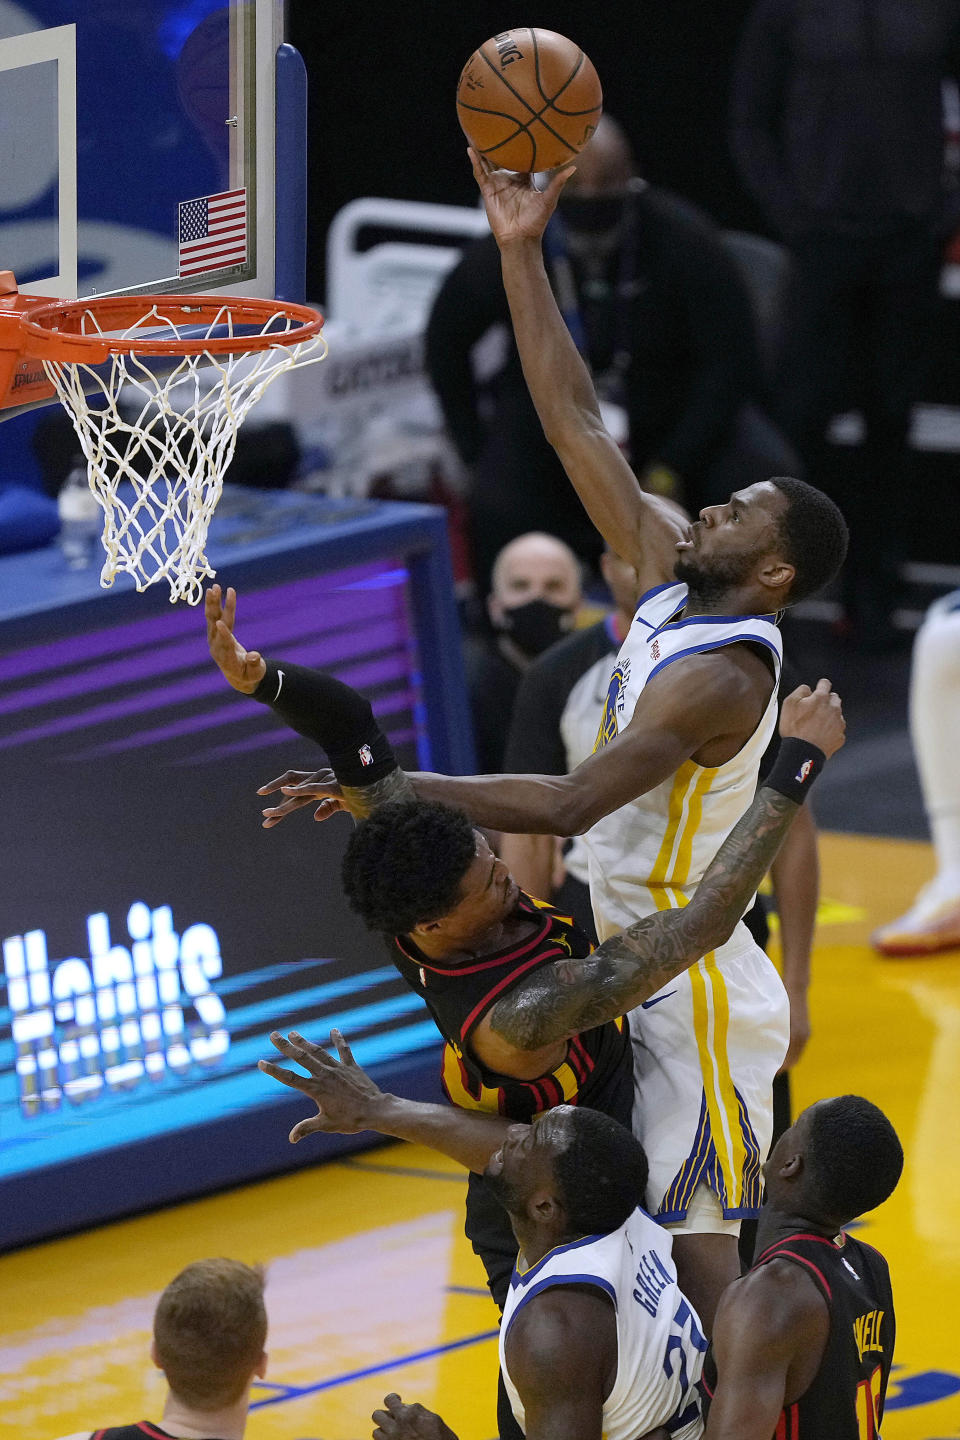 Golden State Warriors forward Andrew Wiggins (22) drives to the basket against Atlanta Hawks forward John Collins (20) during the first half of an NBA basketball game in San Francisco, Friday, March 26, 2021. (AP Photo/Tony Avelar)